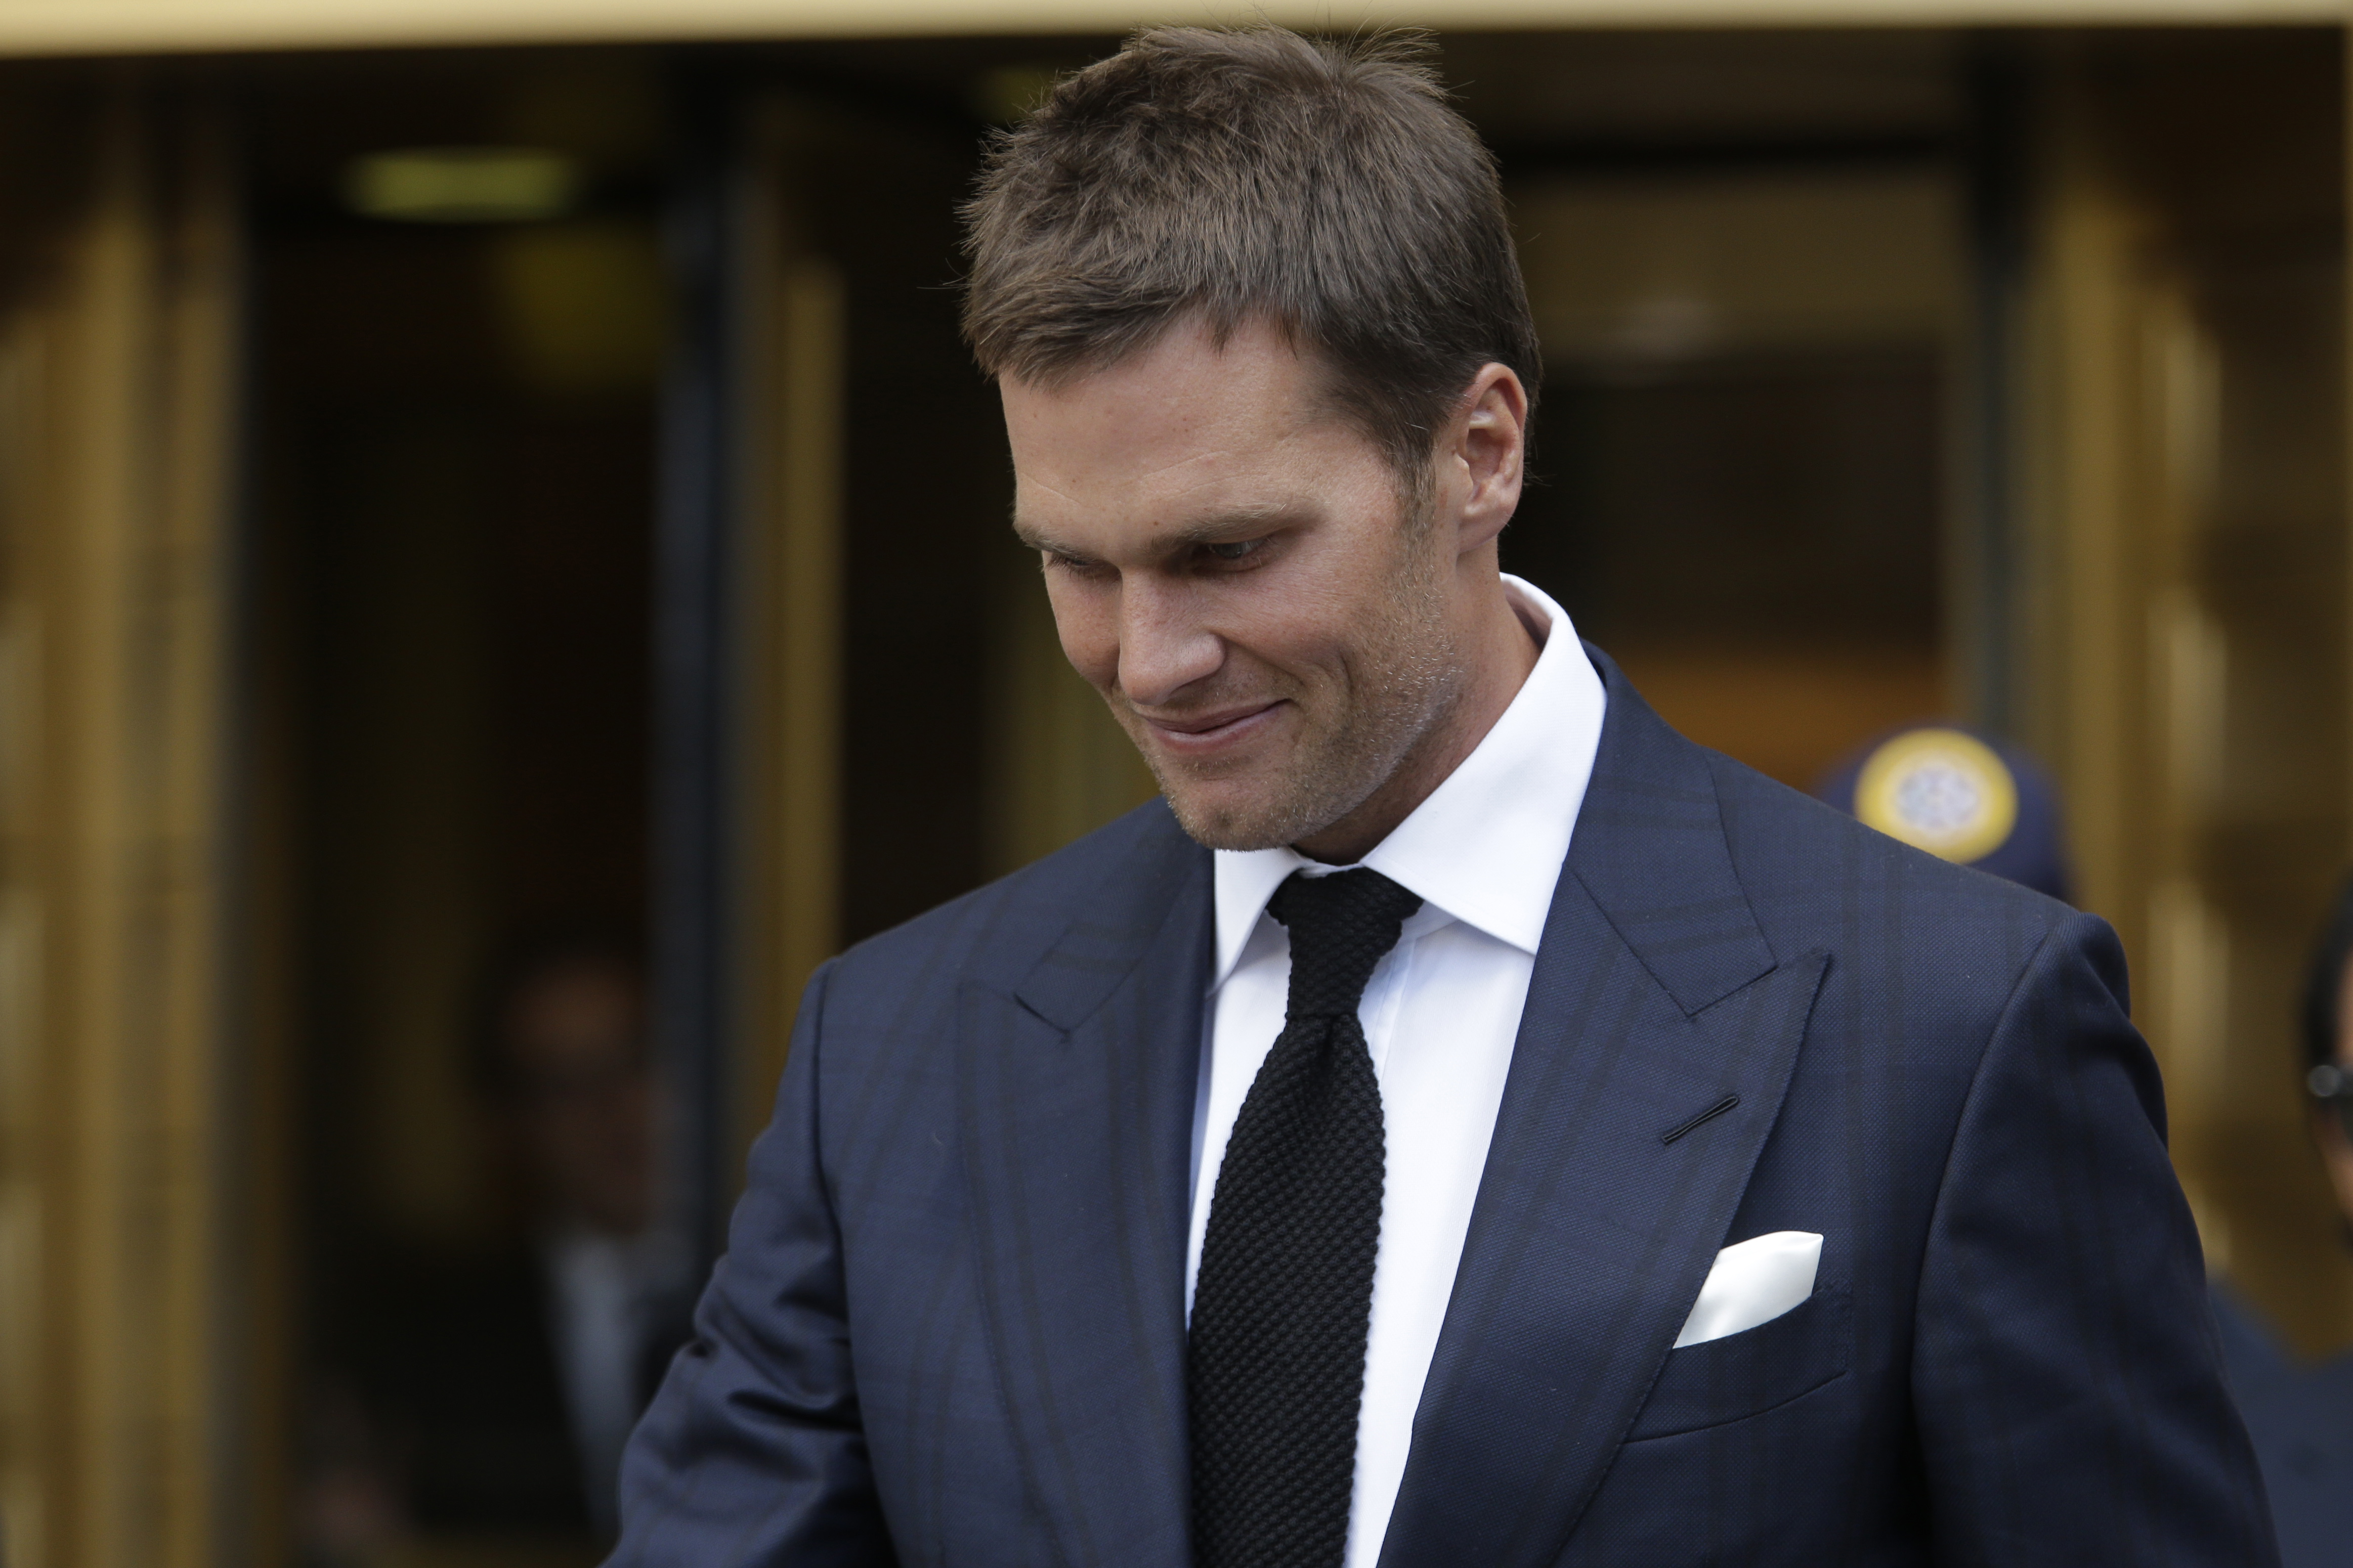 New England Patriots quarterback Tom Brady leaves federal court Wednesday, Aug. 12, 2015, in New York. Brady left the courthouse after a full day of talks with a federal judge in his dispute with the NFL over a four-game suspension. (AP Photo/Mary Altaffe